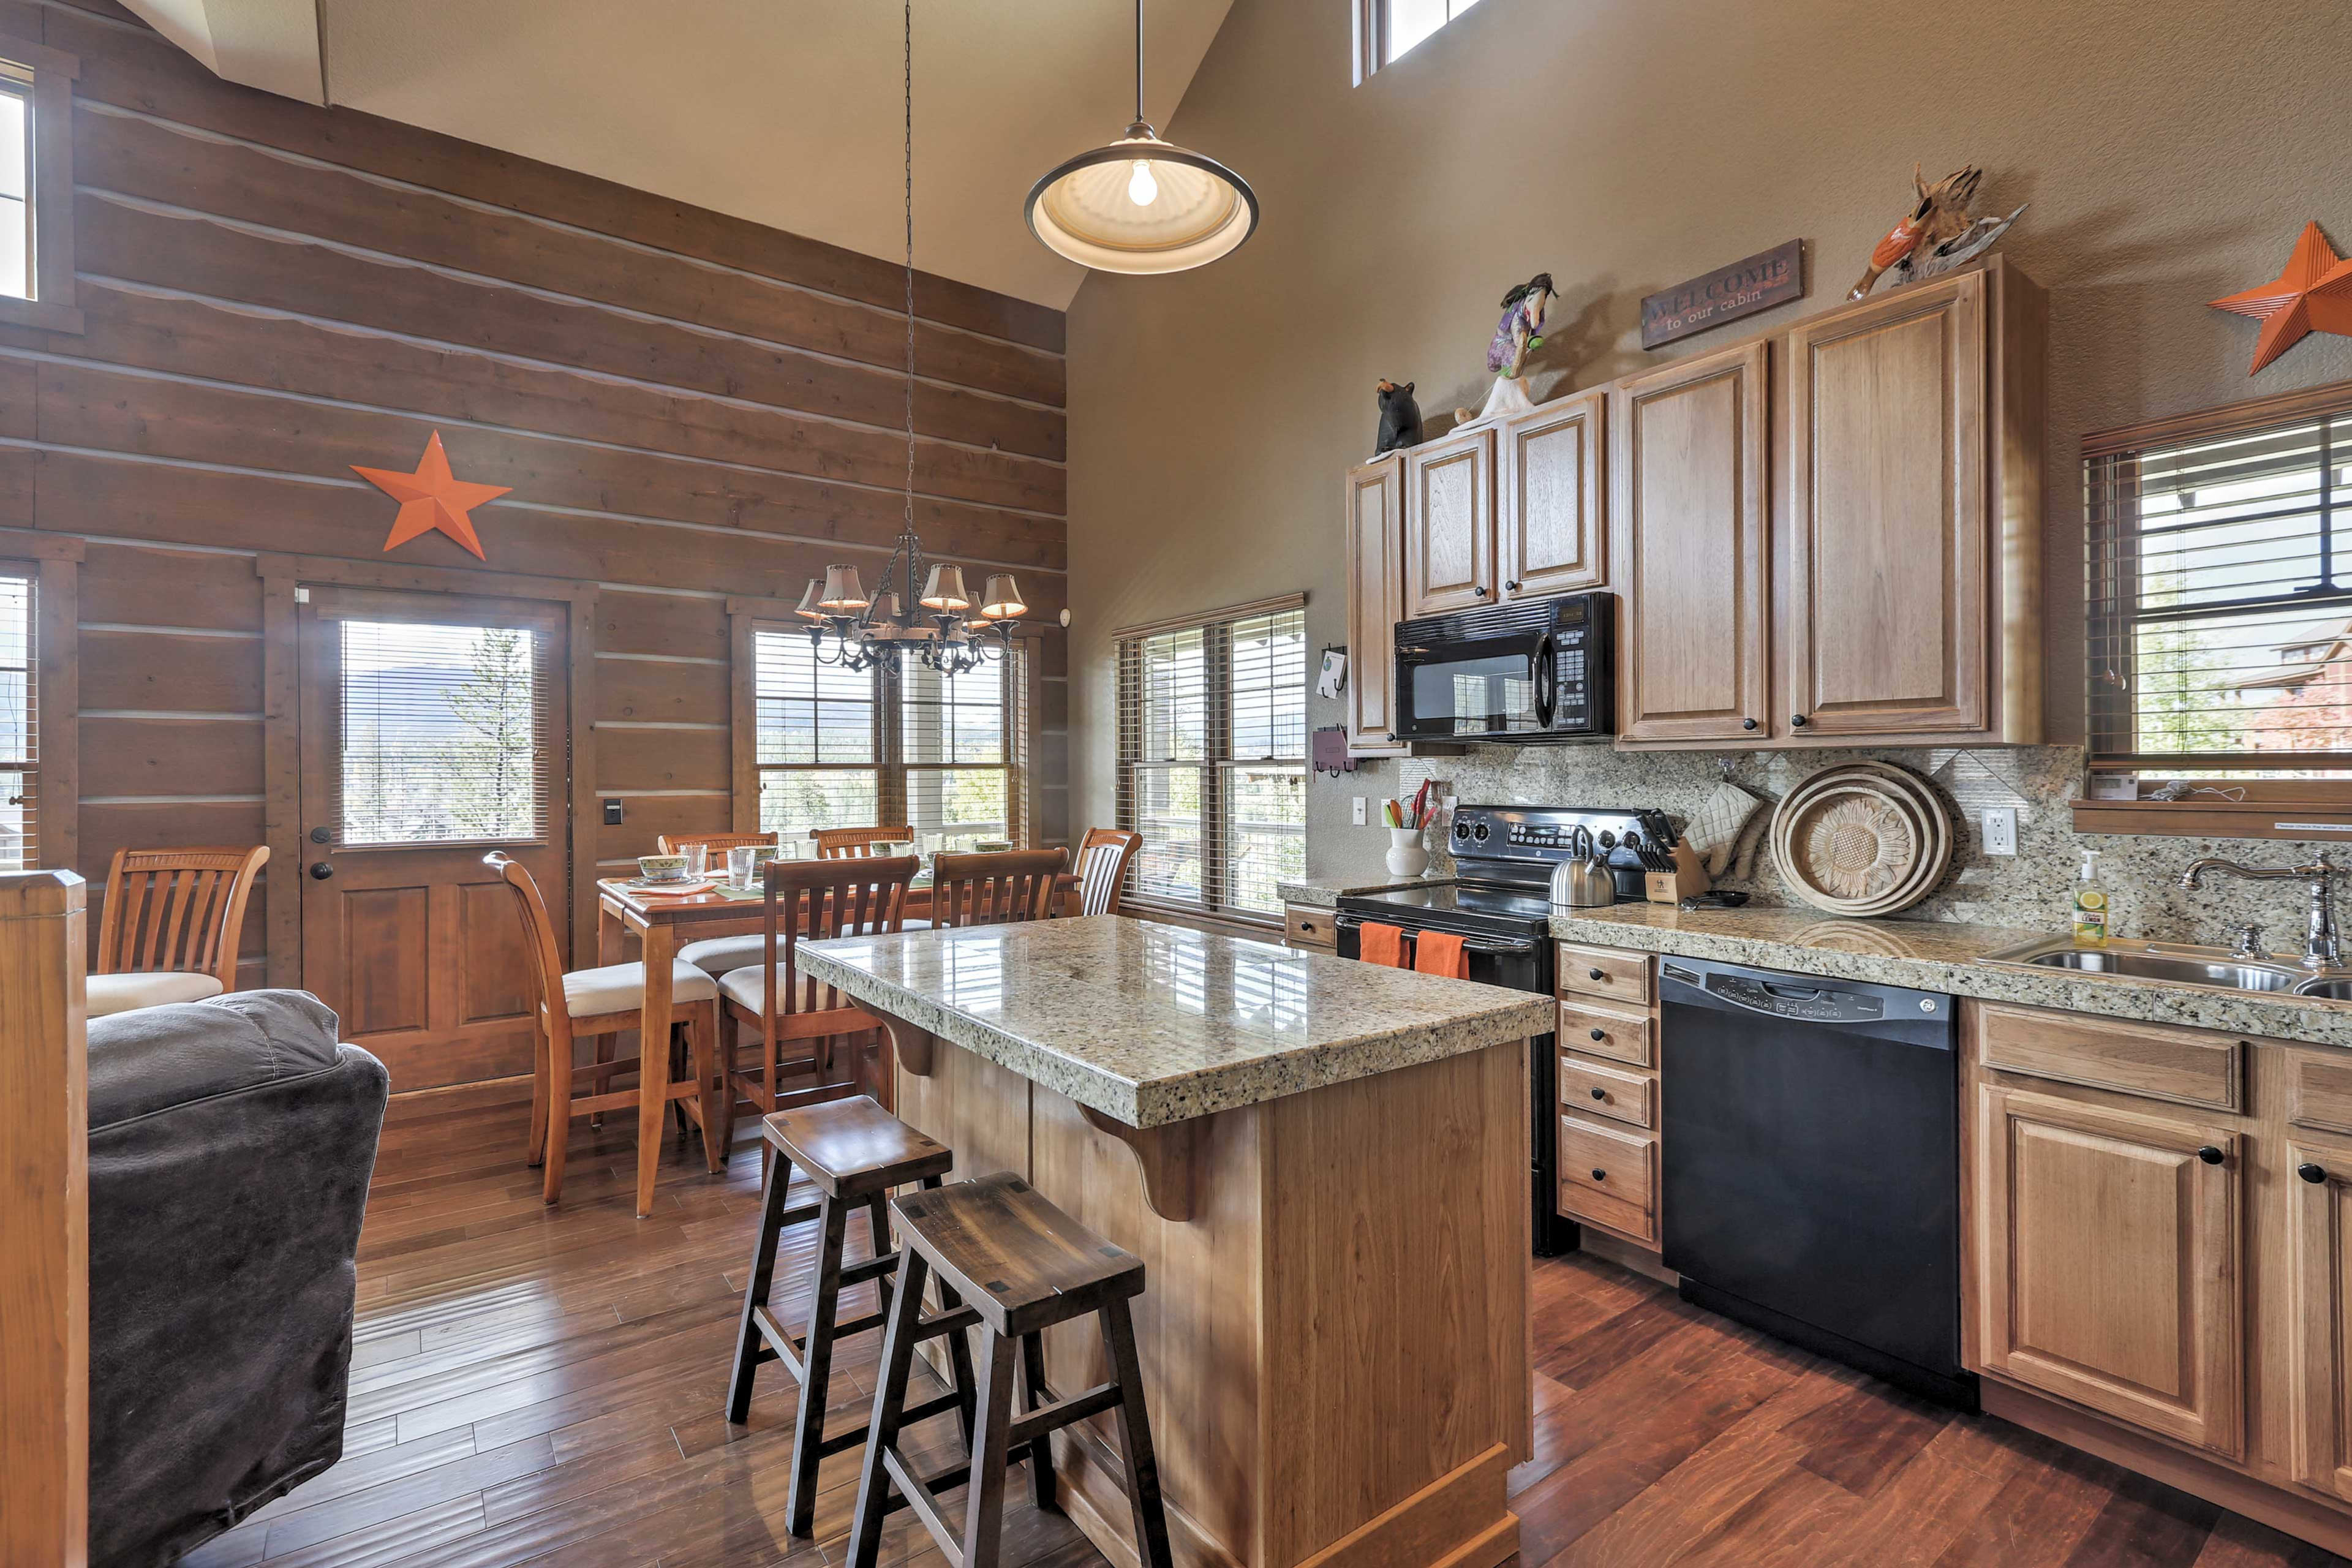 Prepare hearty meals in the fully equipped kitchen with granite countertops.